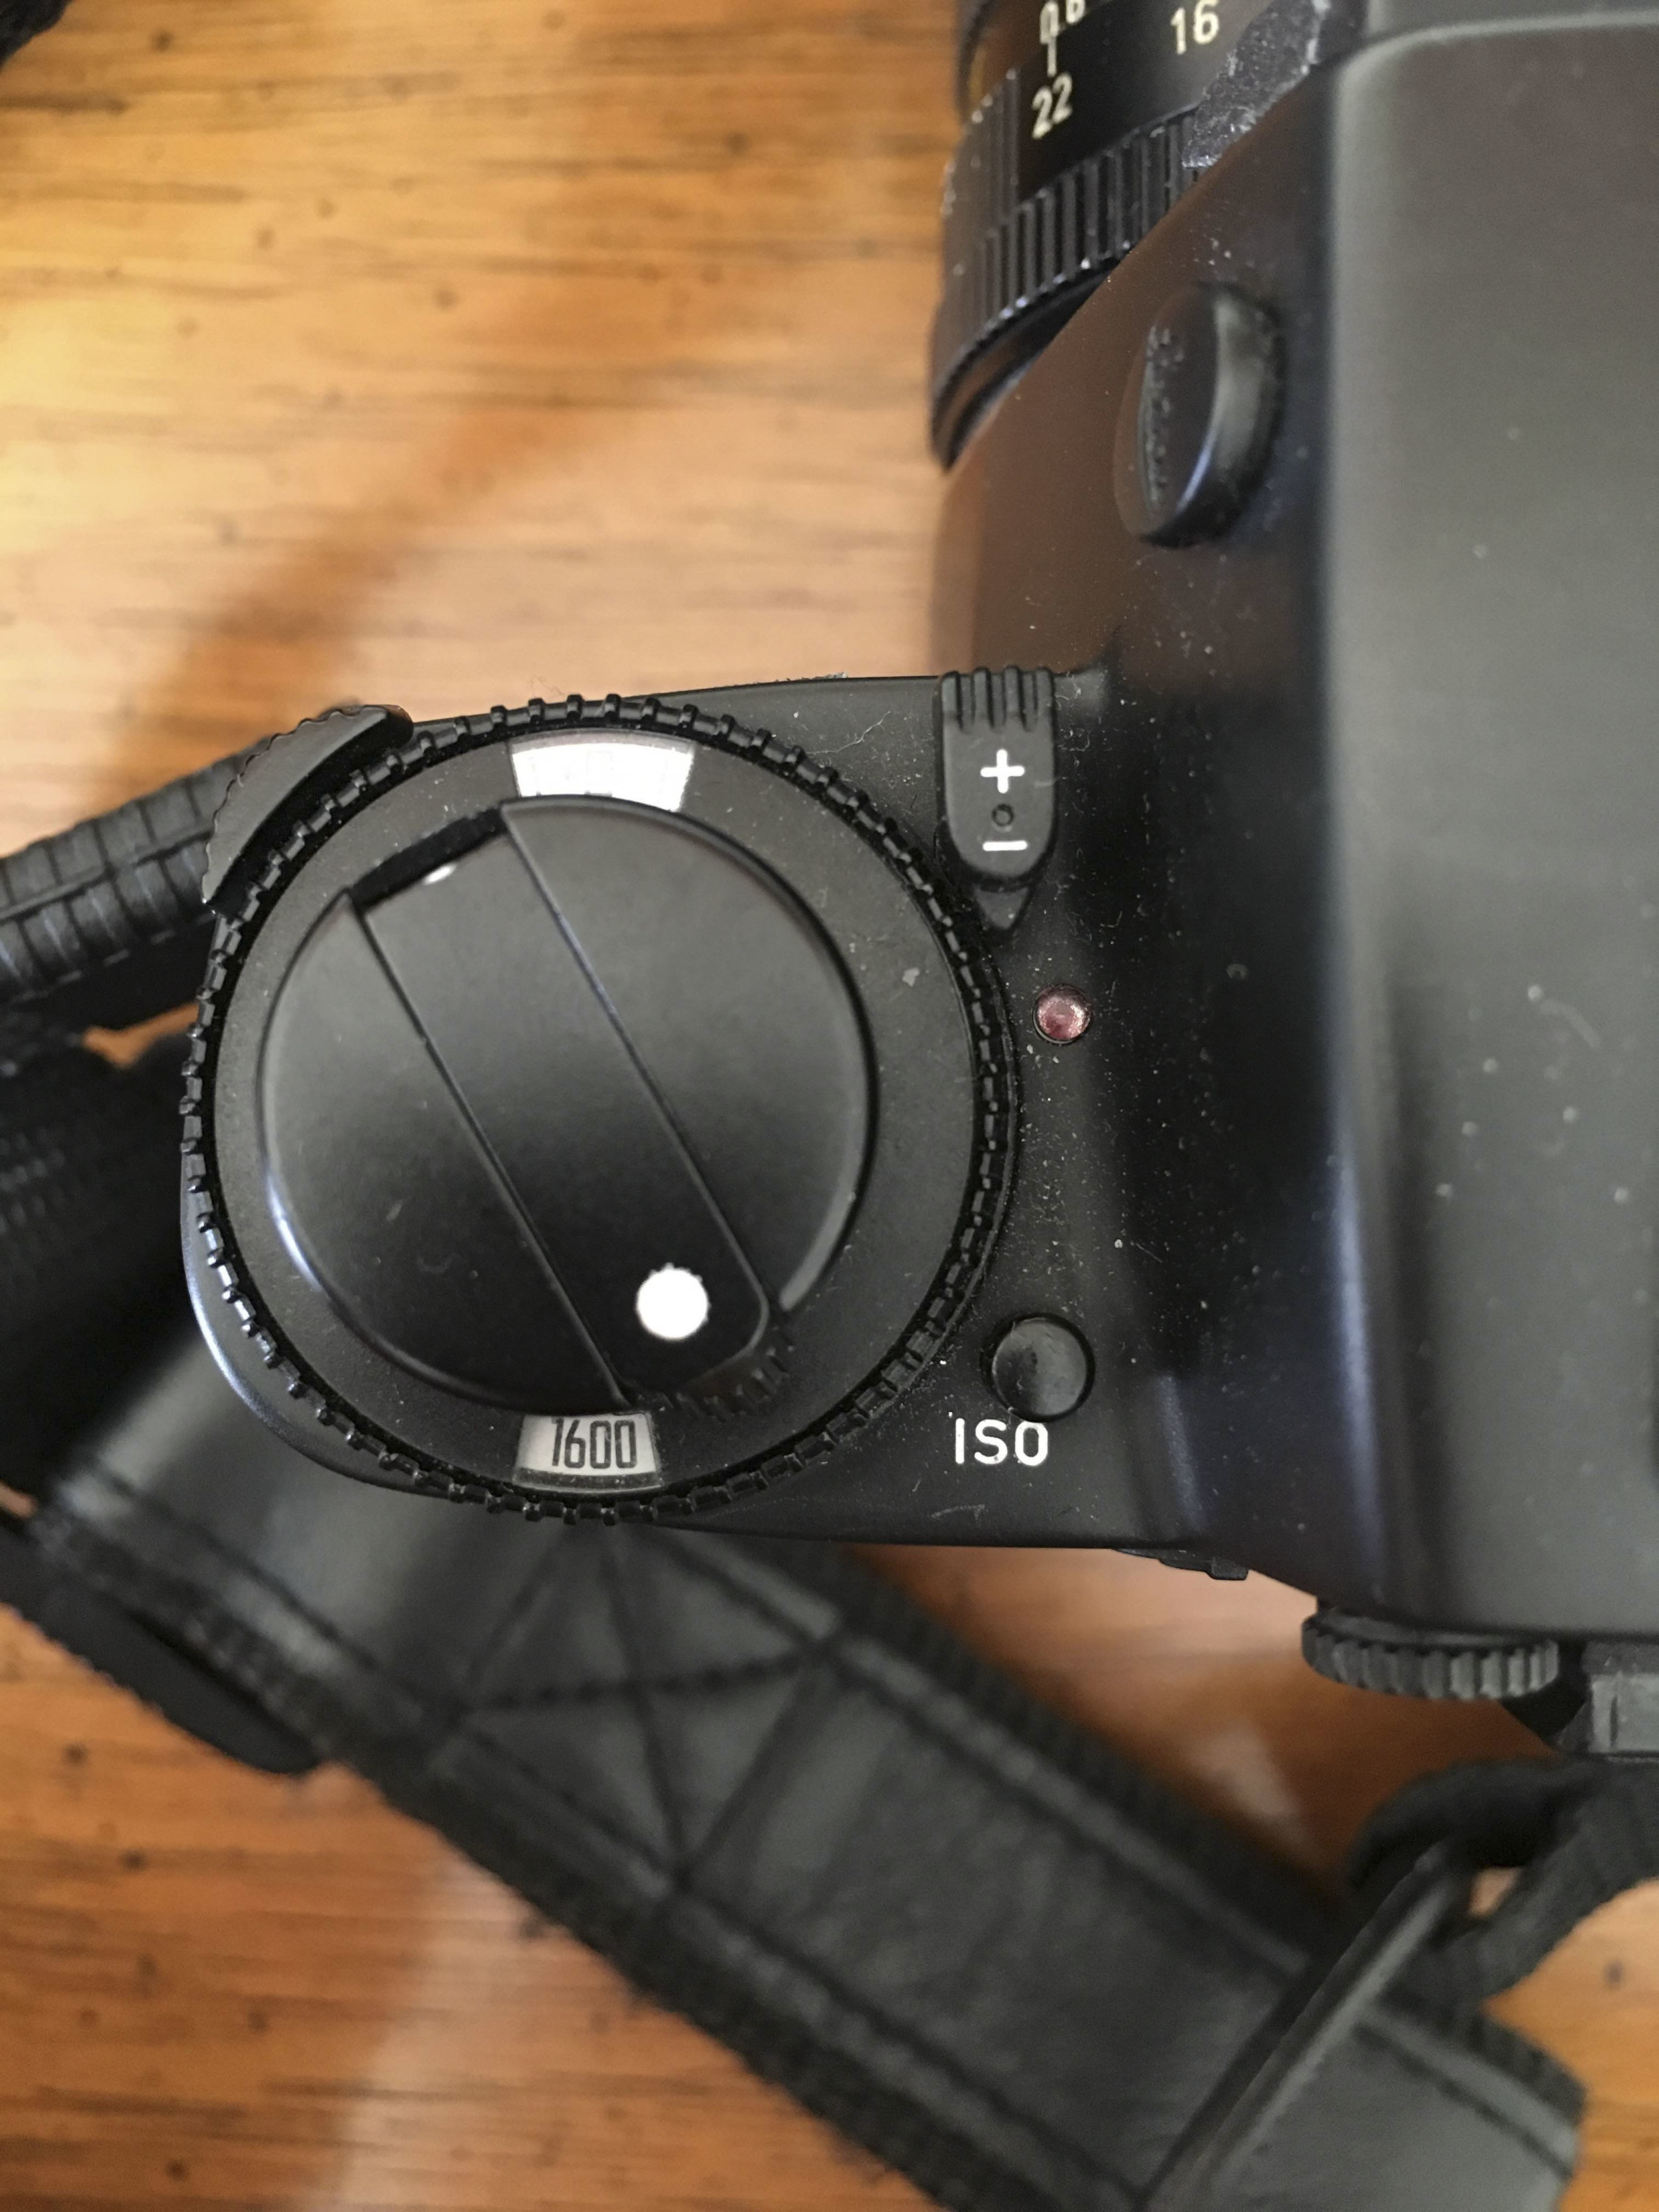 to adjust the iso you have to hold down the iso button and twist the dial to desired iso.  To operate the exposure compensation dial you move the +/- to down and to side and then move the switch on the top left of the dial to move the wheel.